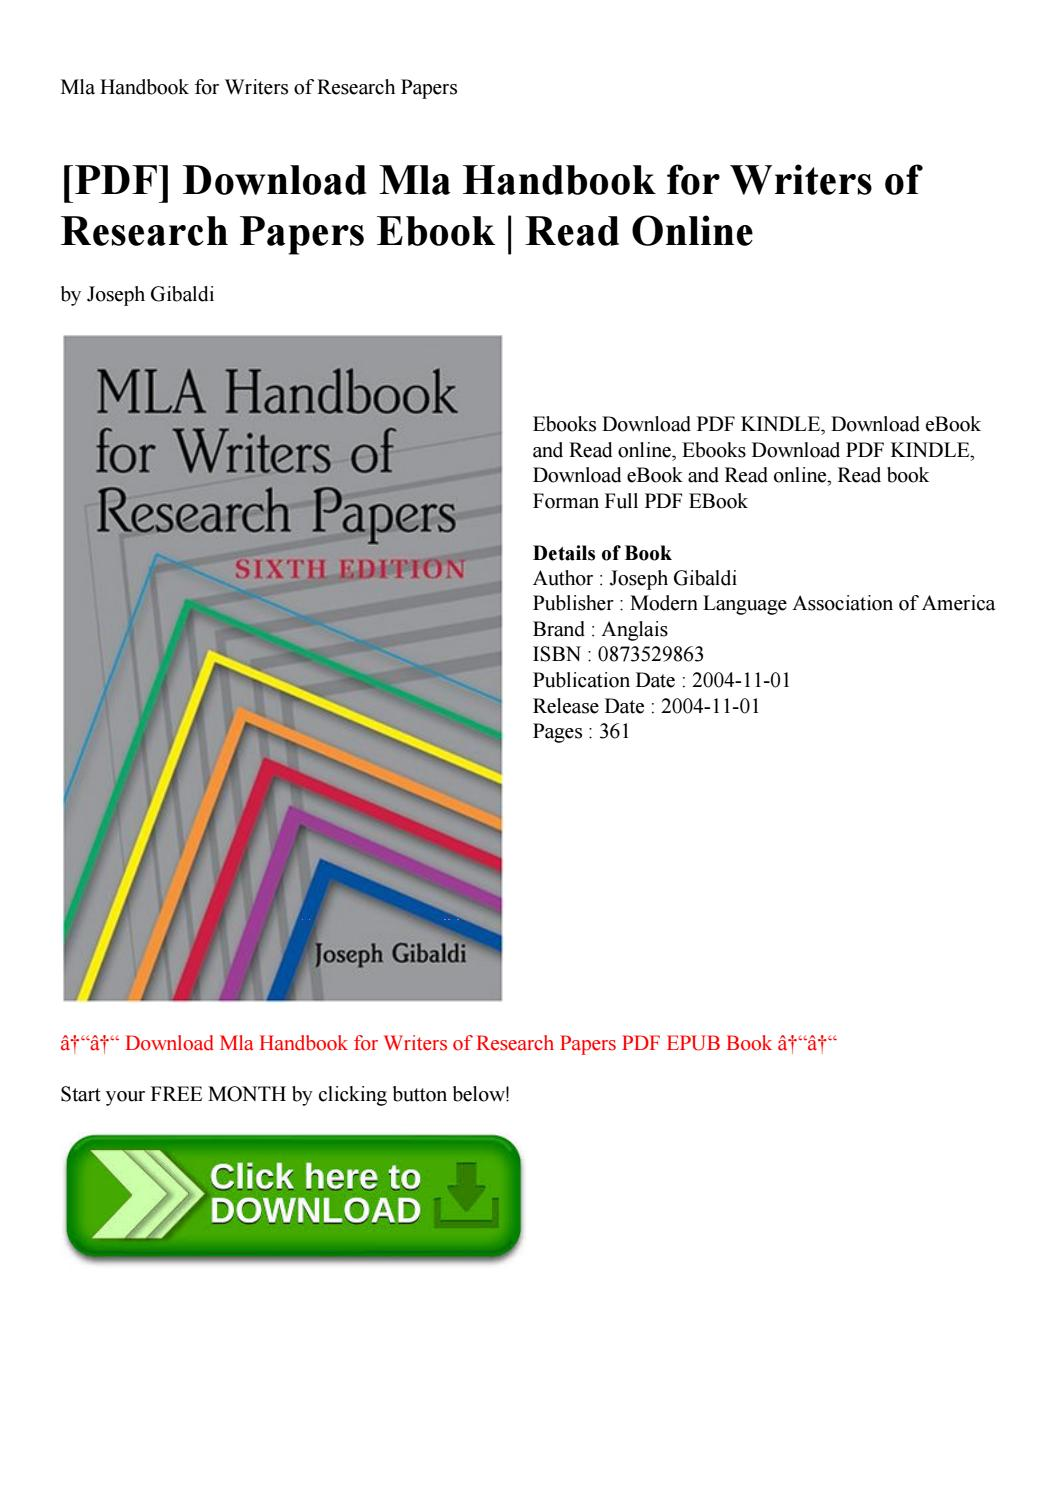 001 Page 1 Research Paper Mla Handbook For Writers Of Papers 6th Edition Pdf Marvelous Download Full